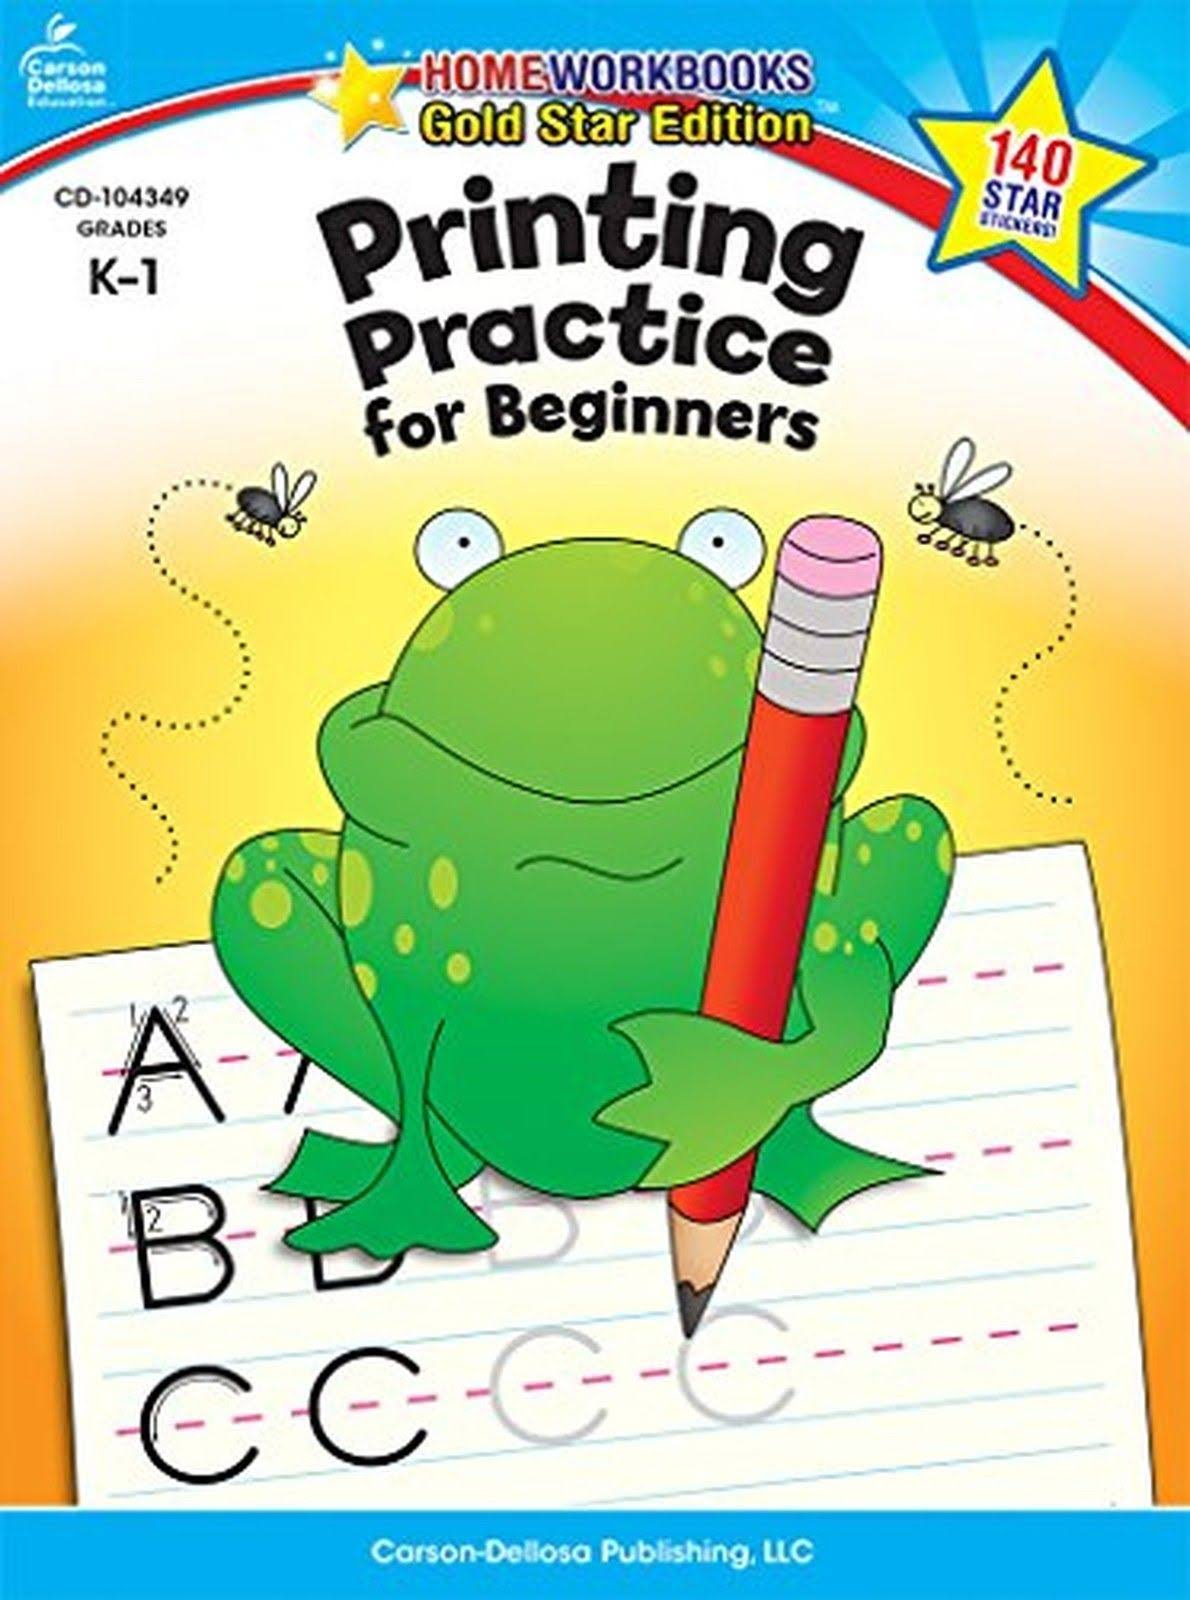 Printing Practice for Beginners Grades K-1: Gold Star Edition - Carson Dellosa Publishing